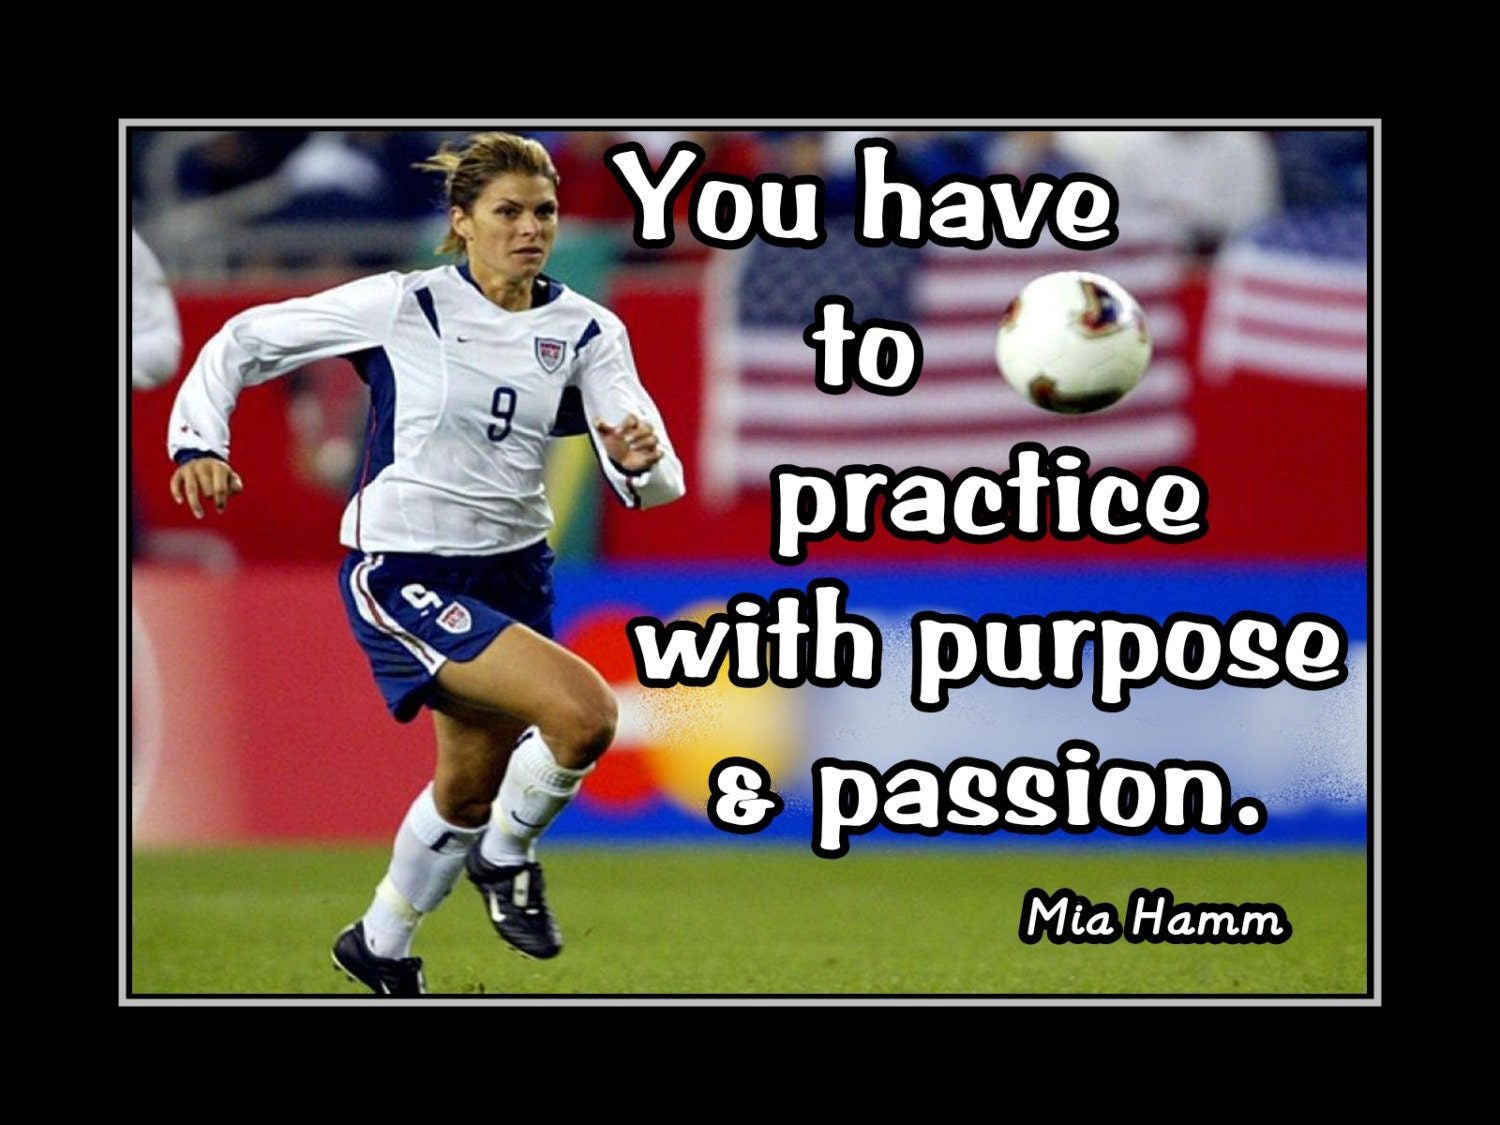 Soccer Motivation Mia Hamm Champion Photo Quote Poster By